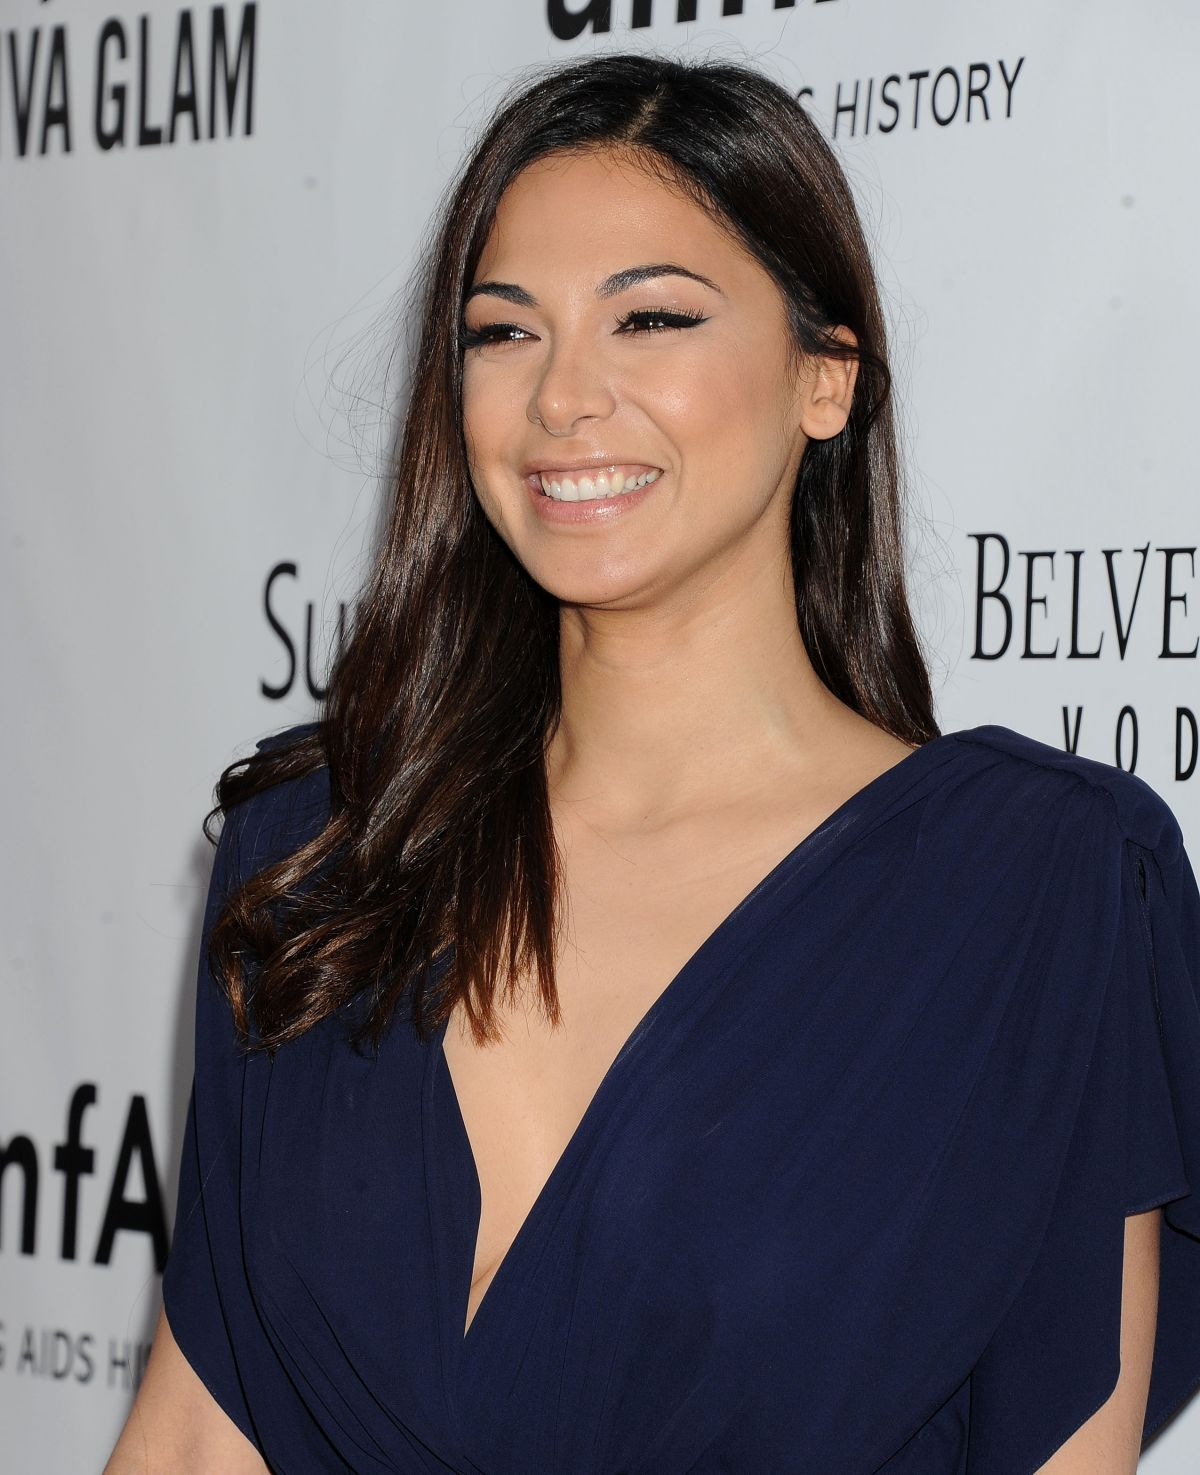 Moran Atias At 2013 amFAR Inspiration Gala Los Angeles In LA